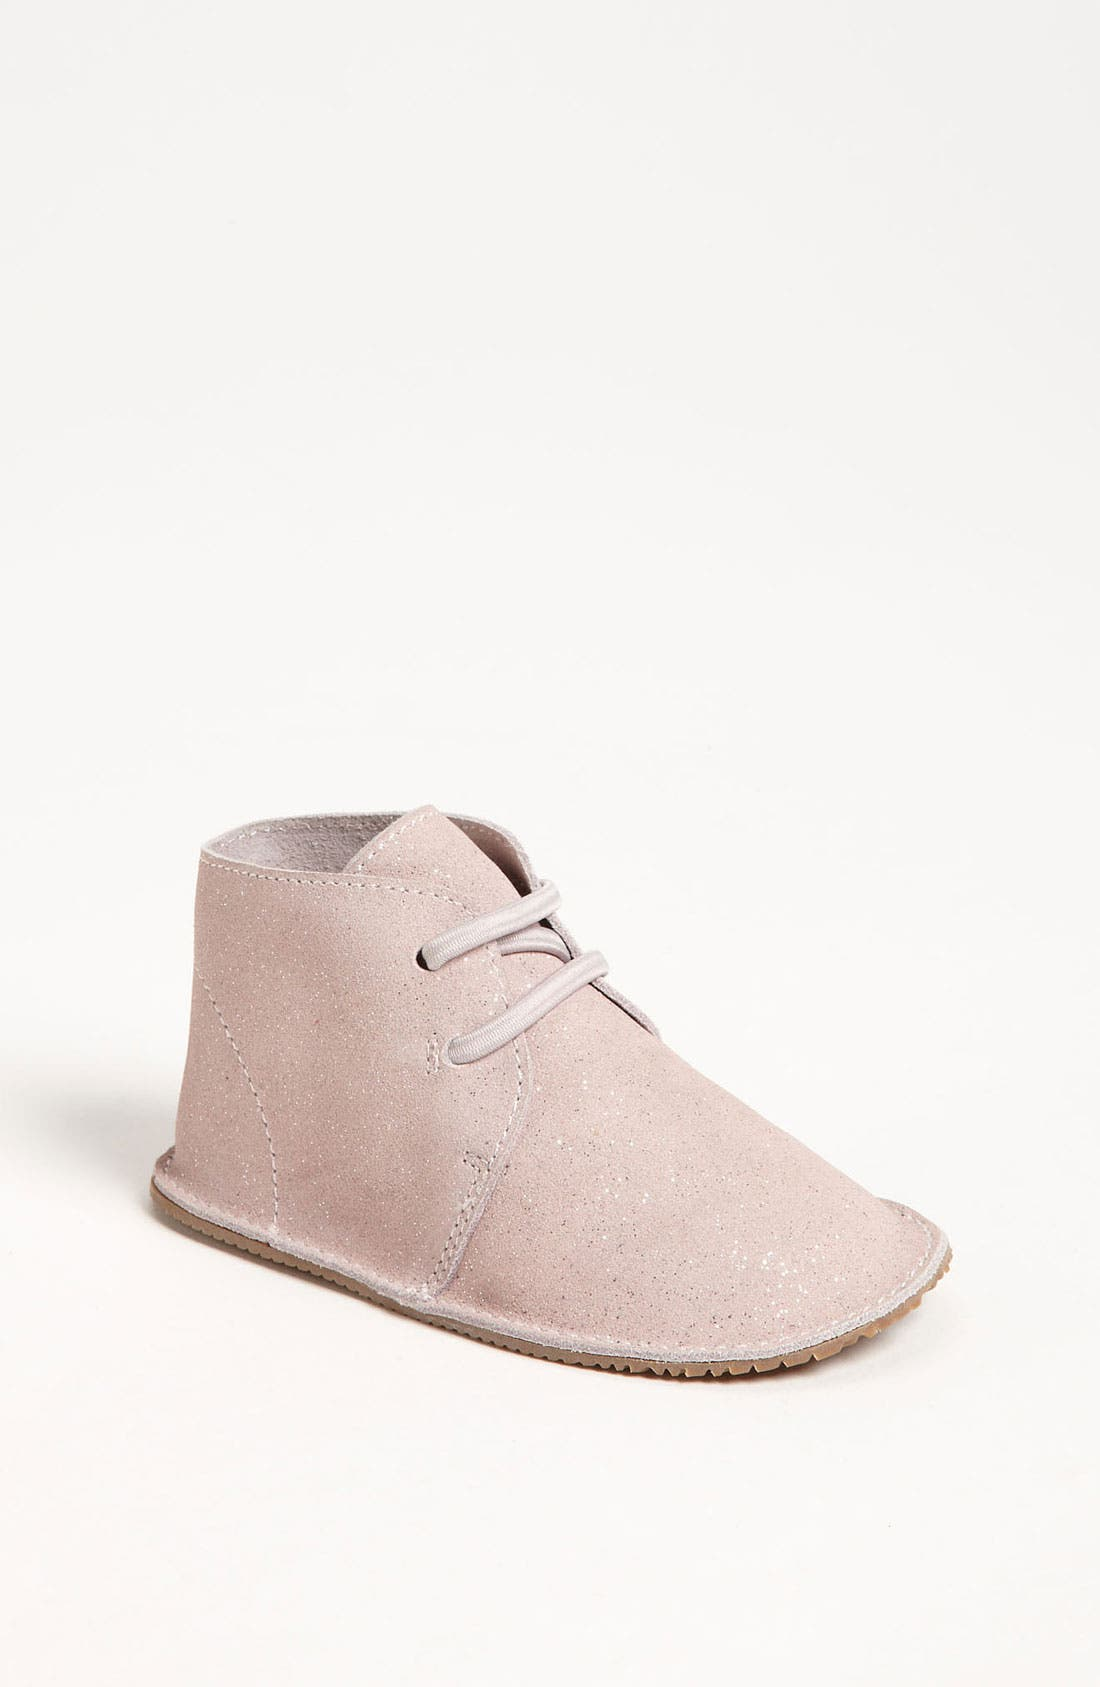 Main Image - Cole Haan 'Mini' Chukka Boot (Baby)